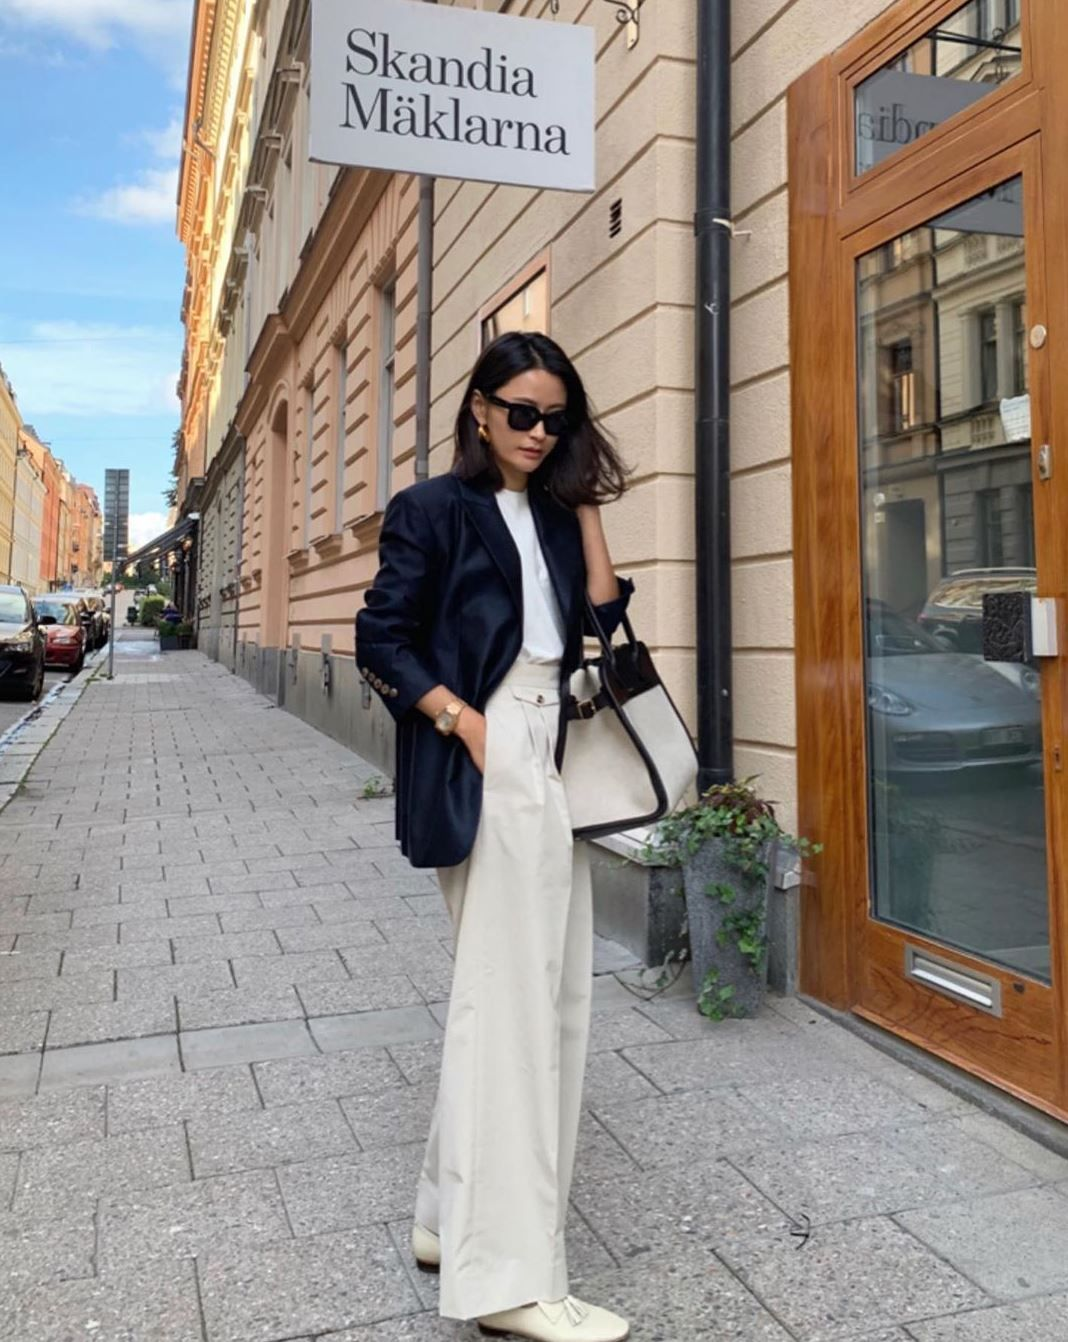 5 Chic Color Combinations To Try For Fall - THE STREET VIBE | 春 ファッション  レディース, 春 ファッション, ファッションアイデア